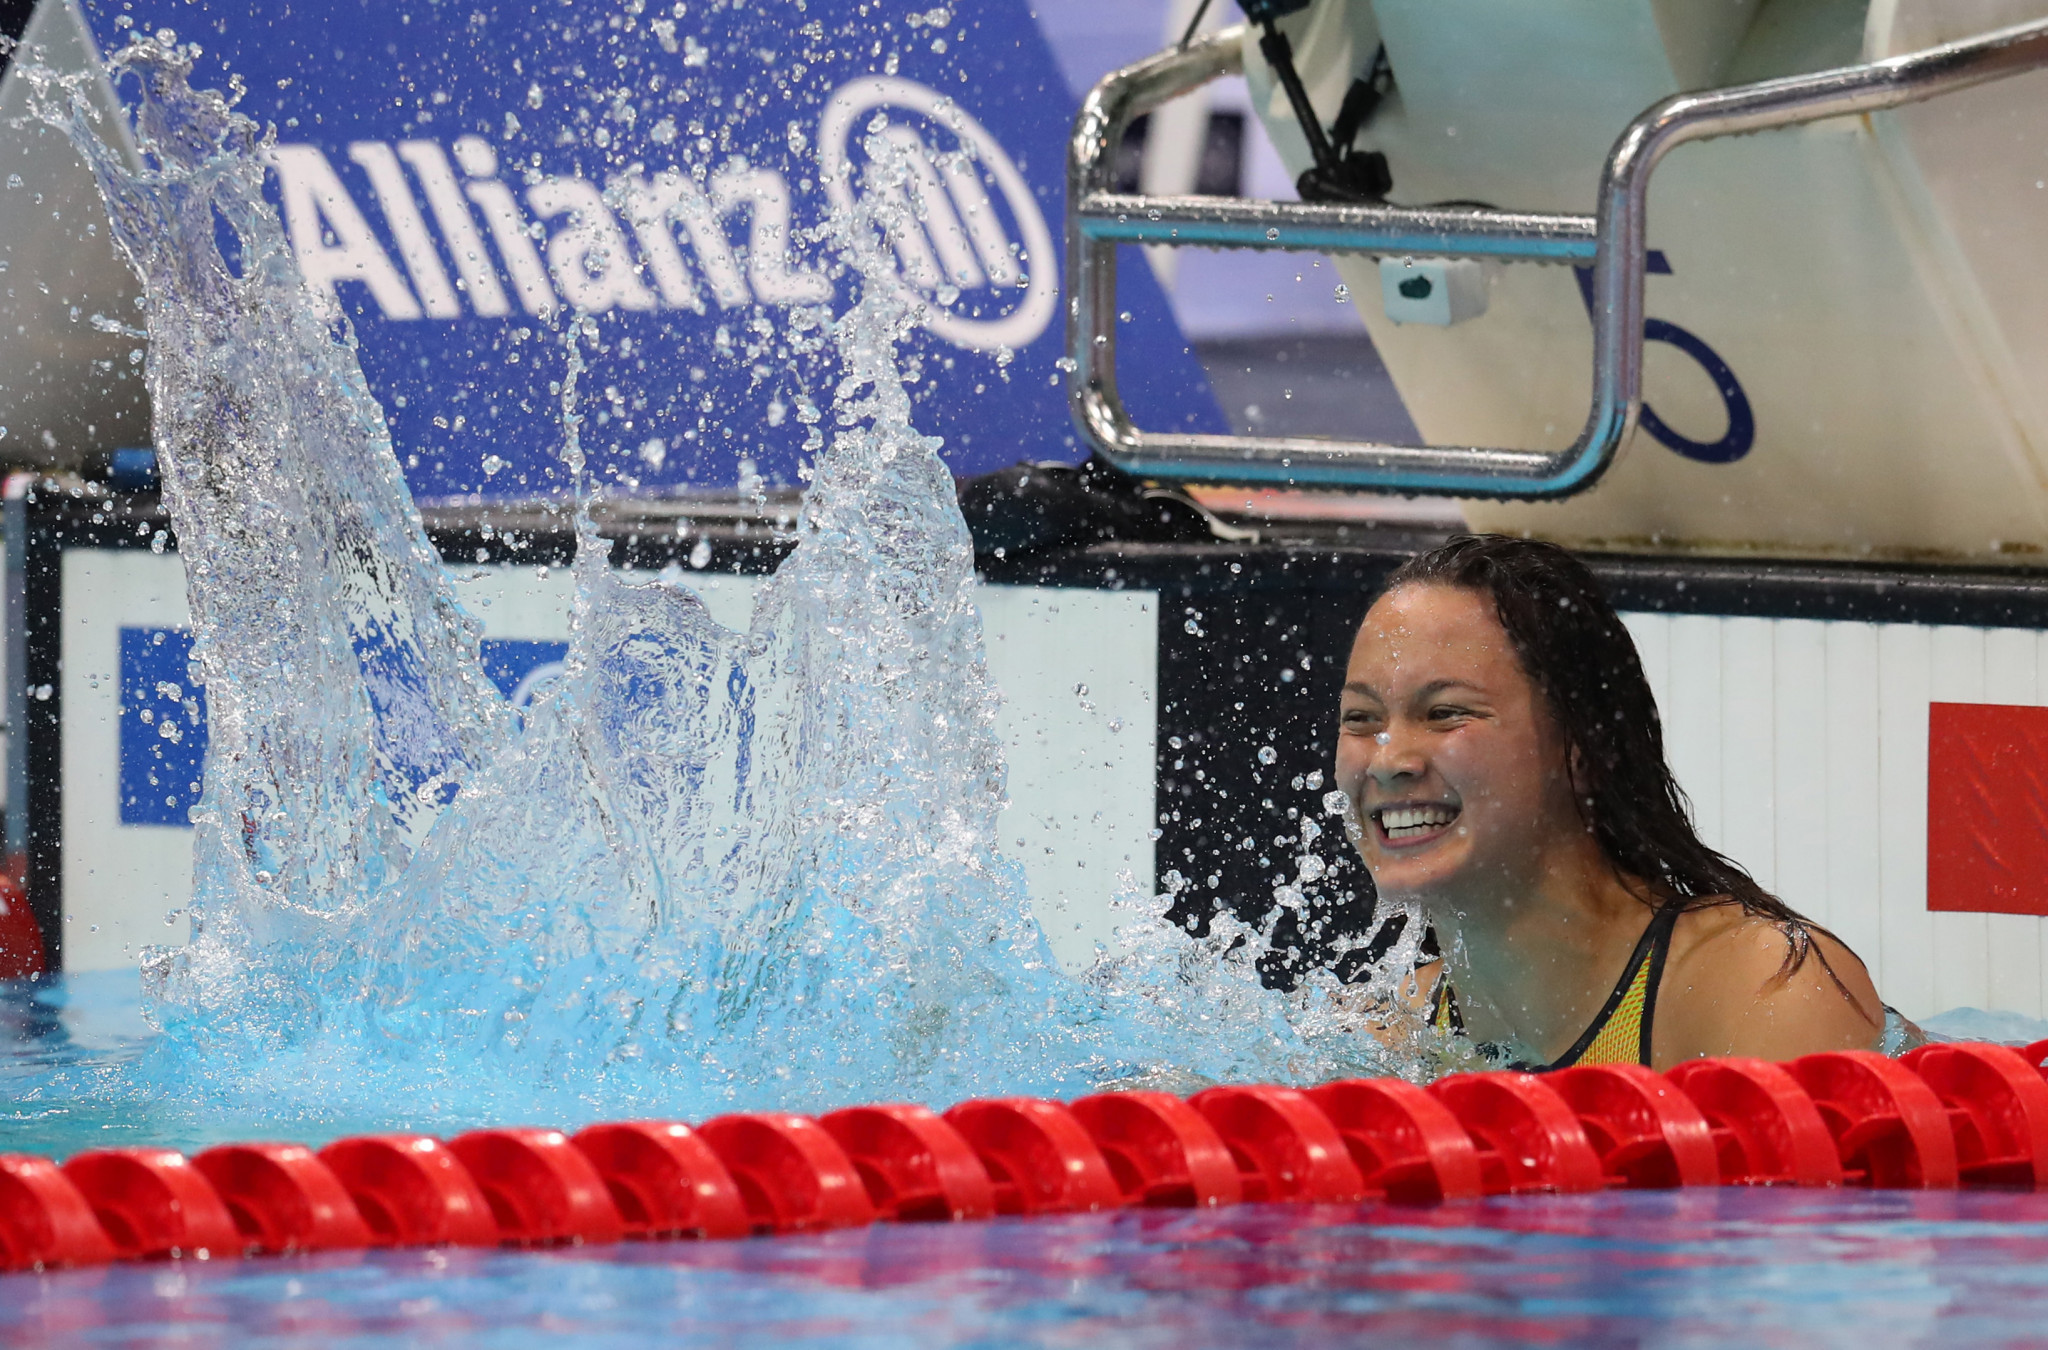 British swimmer Alice Tai has won six world titles at the 2019 World Swimming Championships in London ©Getty Images